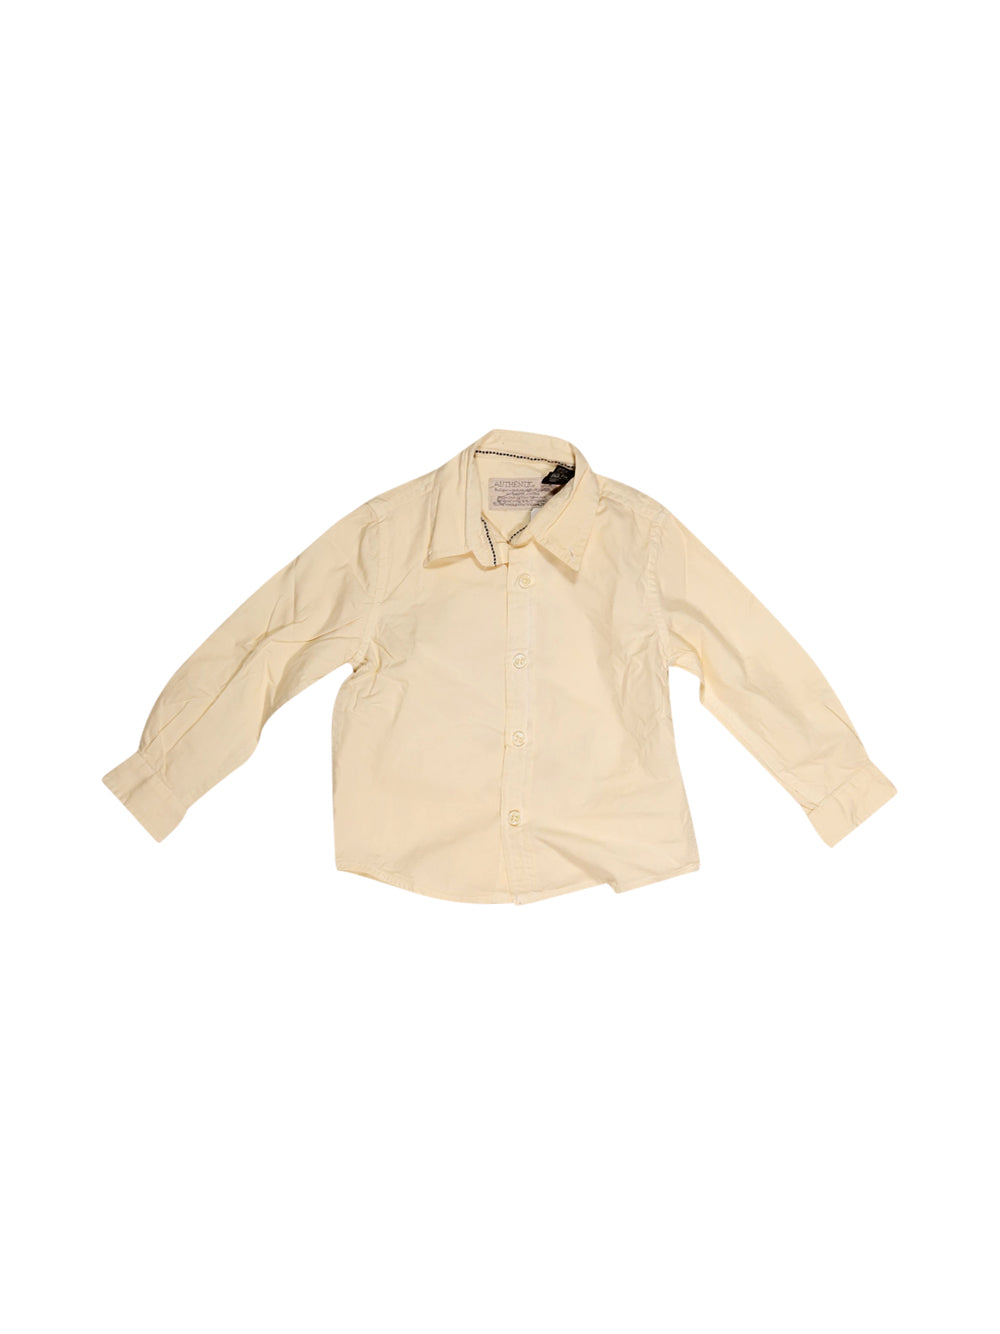 Front photo of Preloved Zara Beige Boy's shirt - size 2-3 yrs